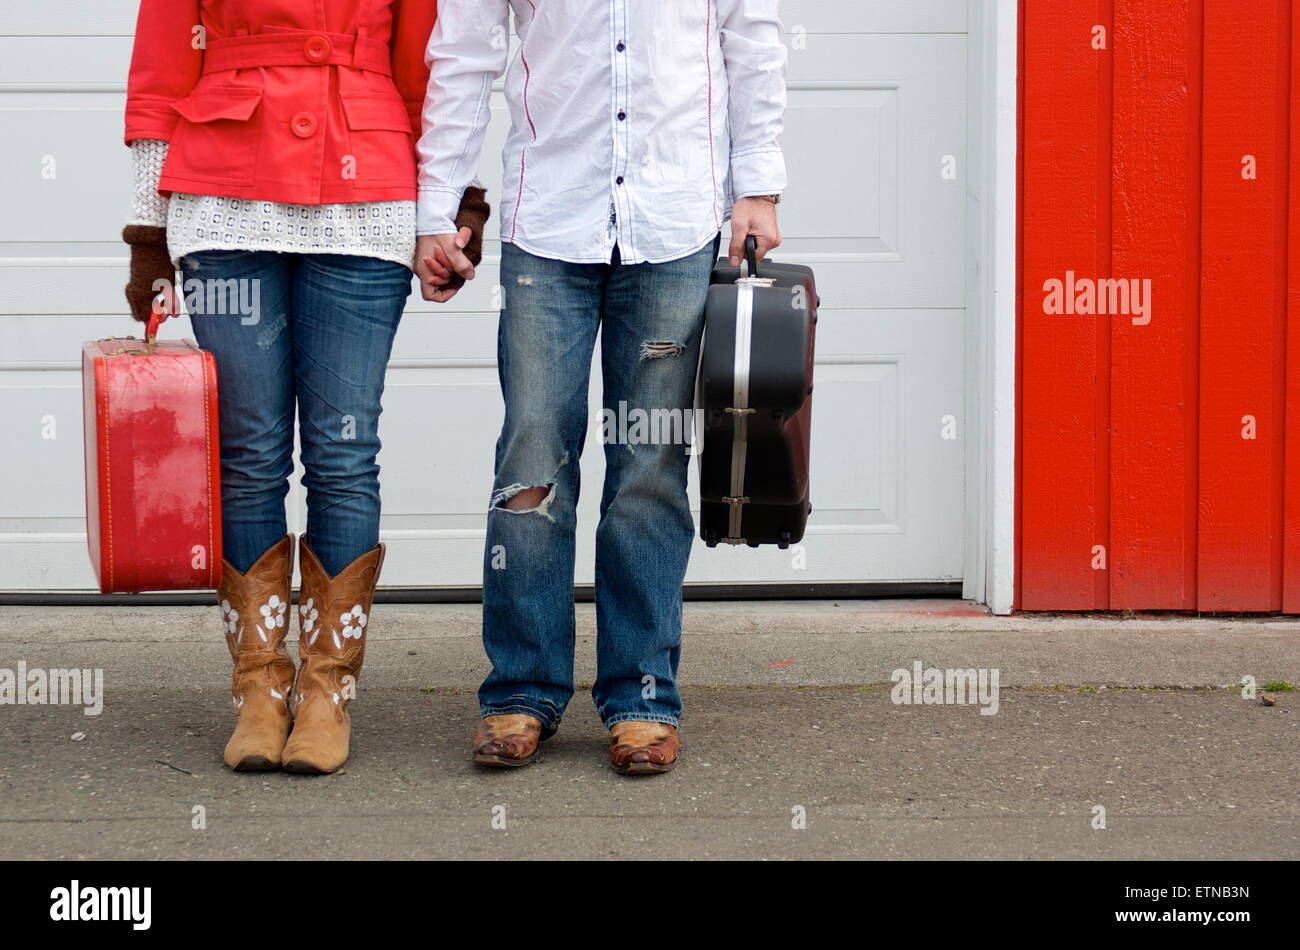 Low section of couple holding a suitcase and guitar case - Stock Image